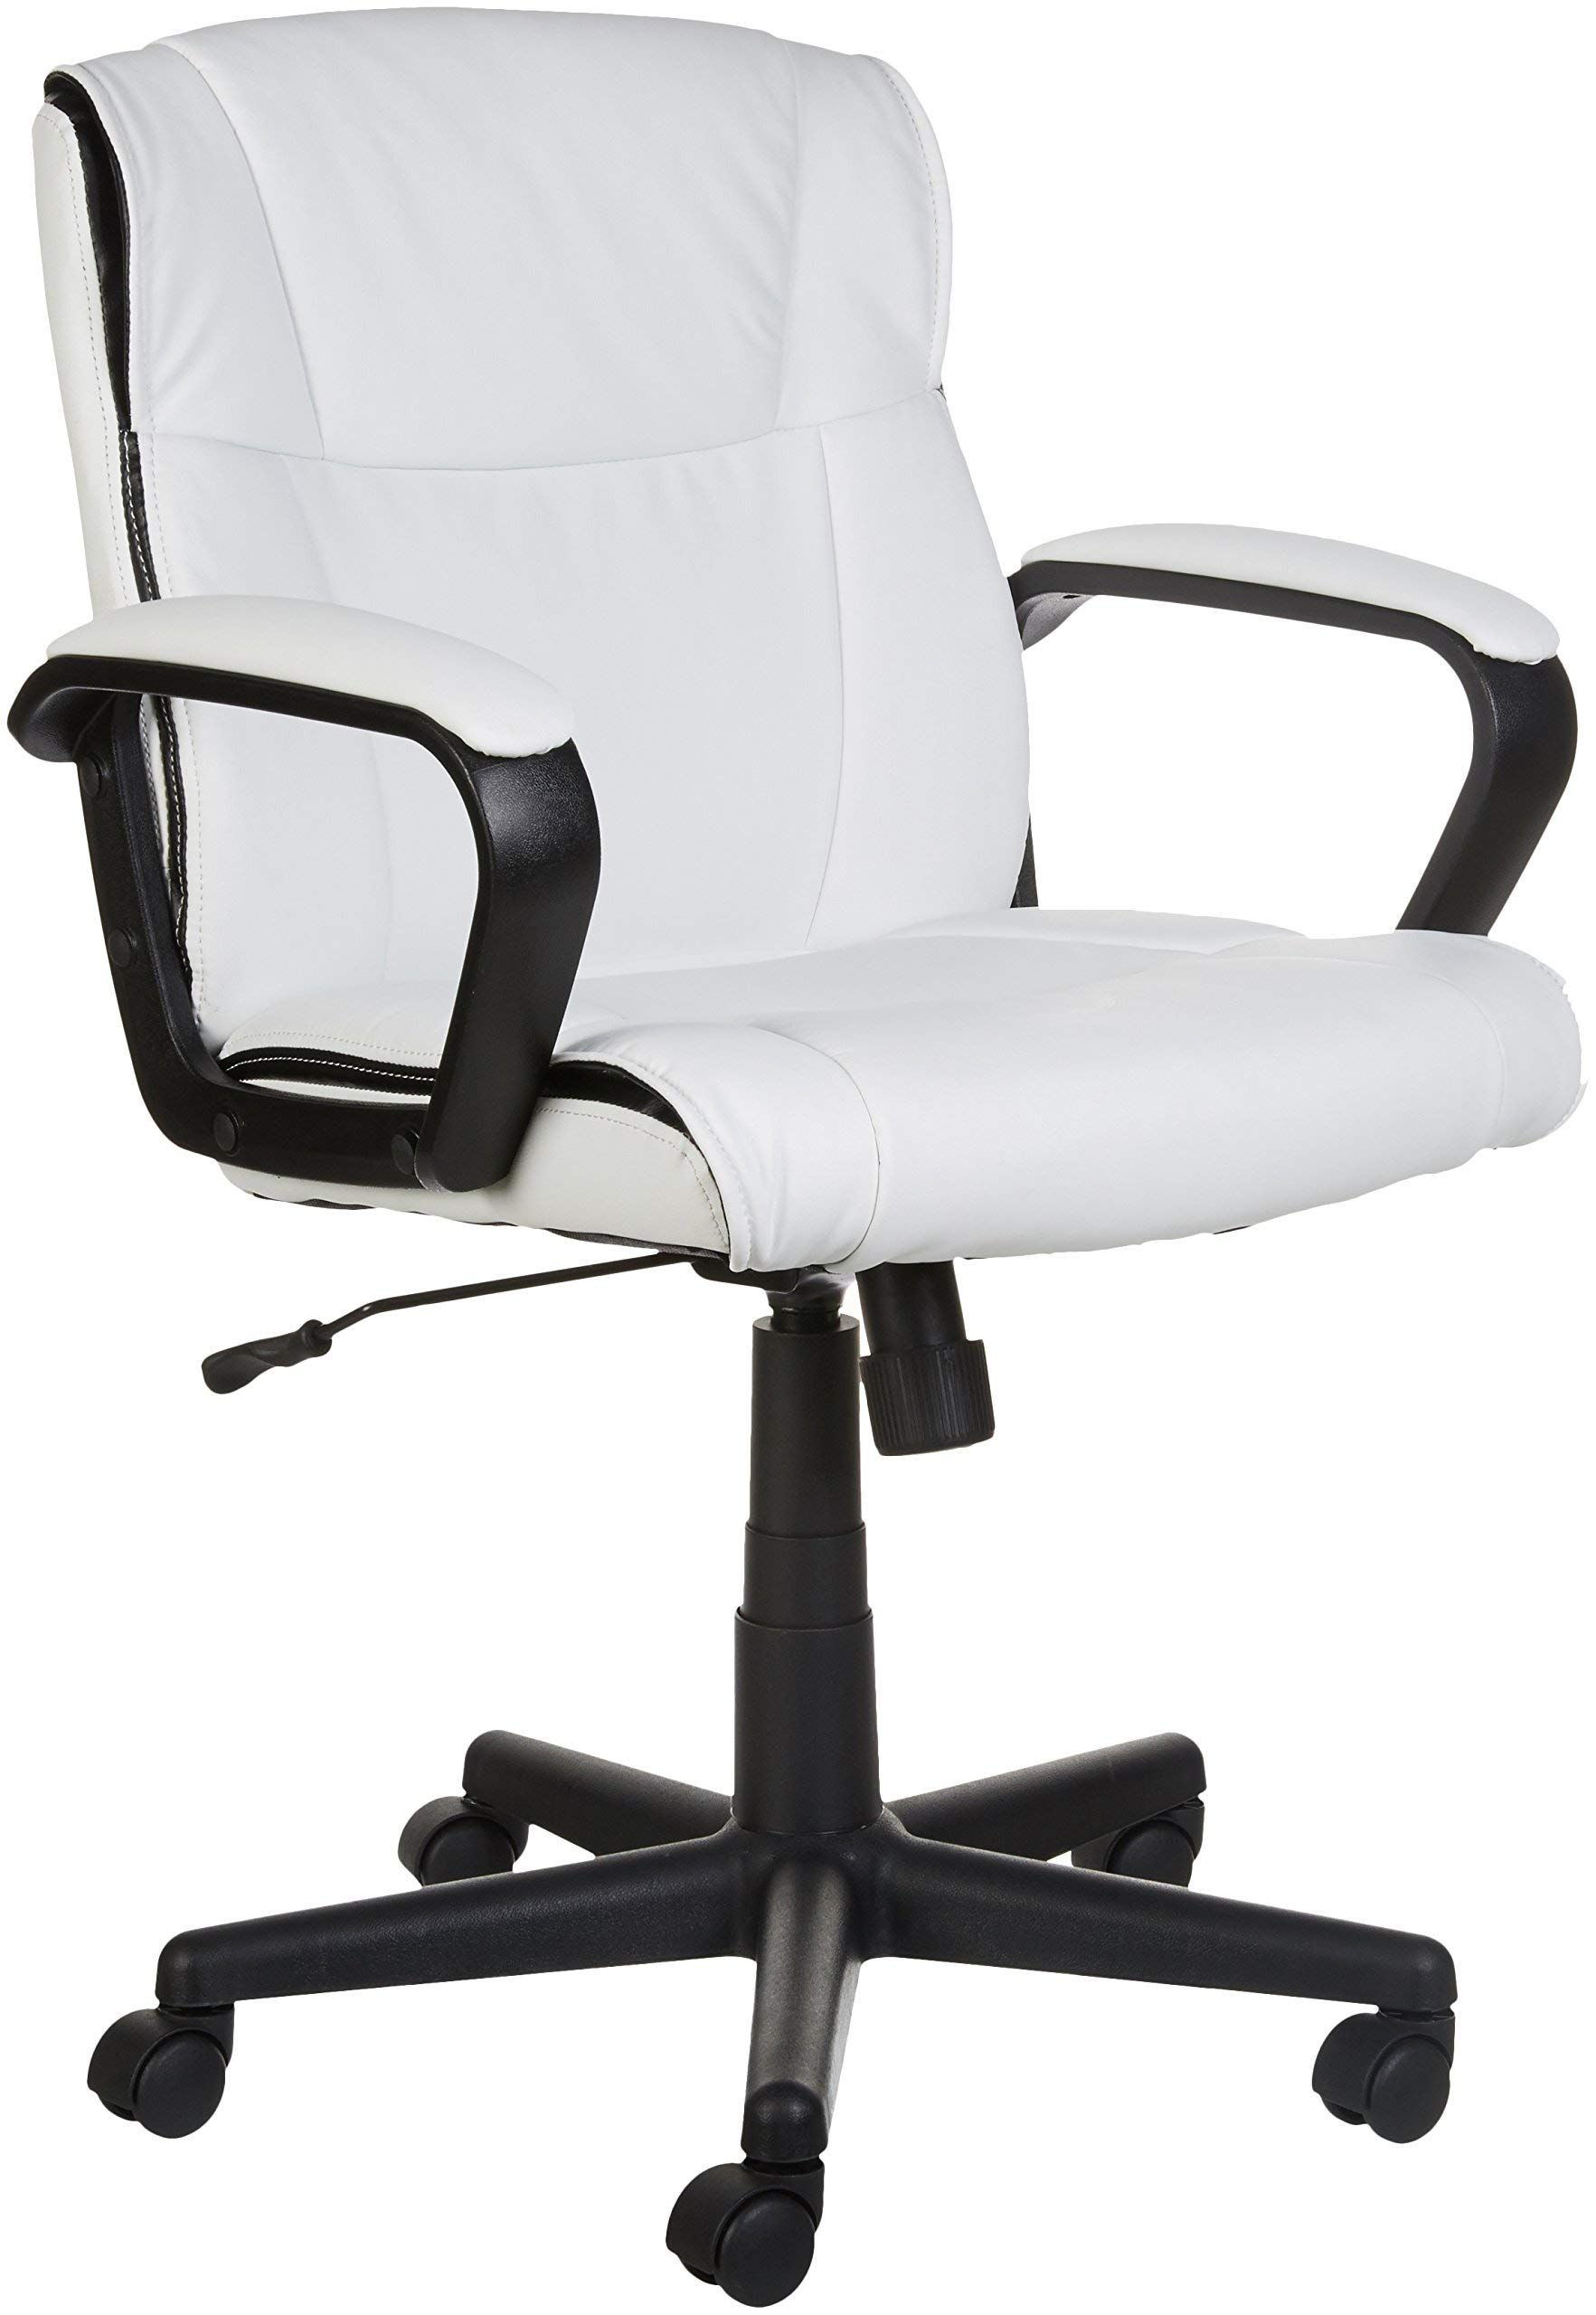 AmazonBasics Classic Leather-Padded Mid-Back Office Computer Desk Chair with Armrest - White